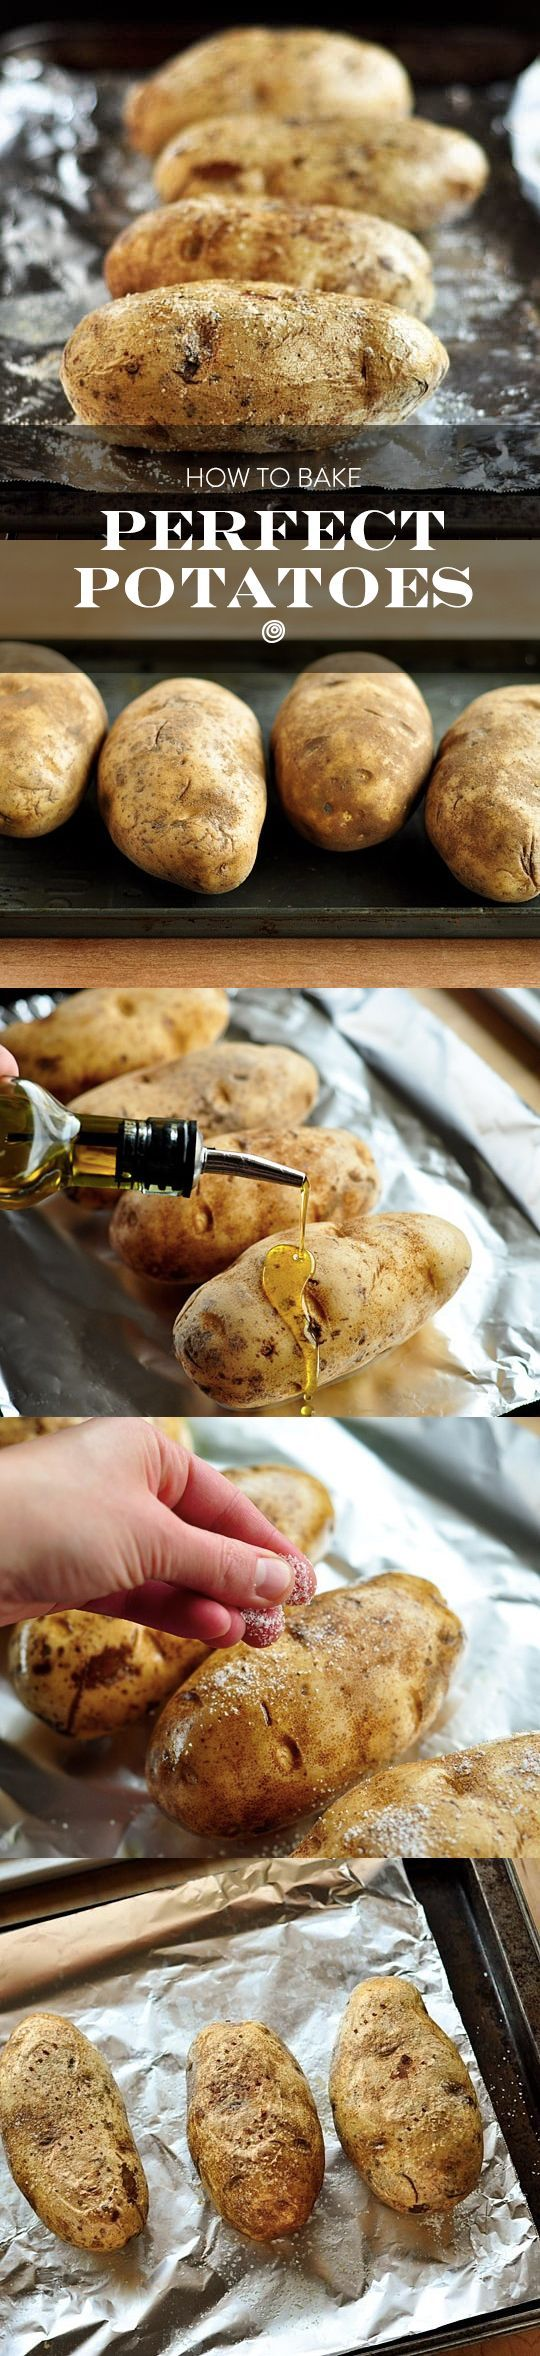 How to Bake a Potato In the Oven. This is one of those things you hardly need recipes for - the kind of recipe that is easy to memorize for a quick (vegetarian) weeknight dinner side dish! Follow these step-by-step instructions for EASY and SIMPLE perfect baked potatoes every time. Great Memorial Day food if you're looking for ideas and recipes for your bbq or party!